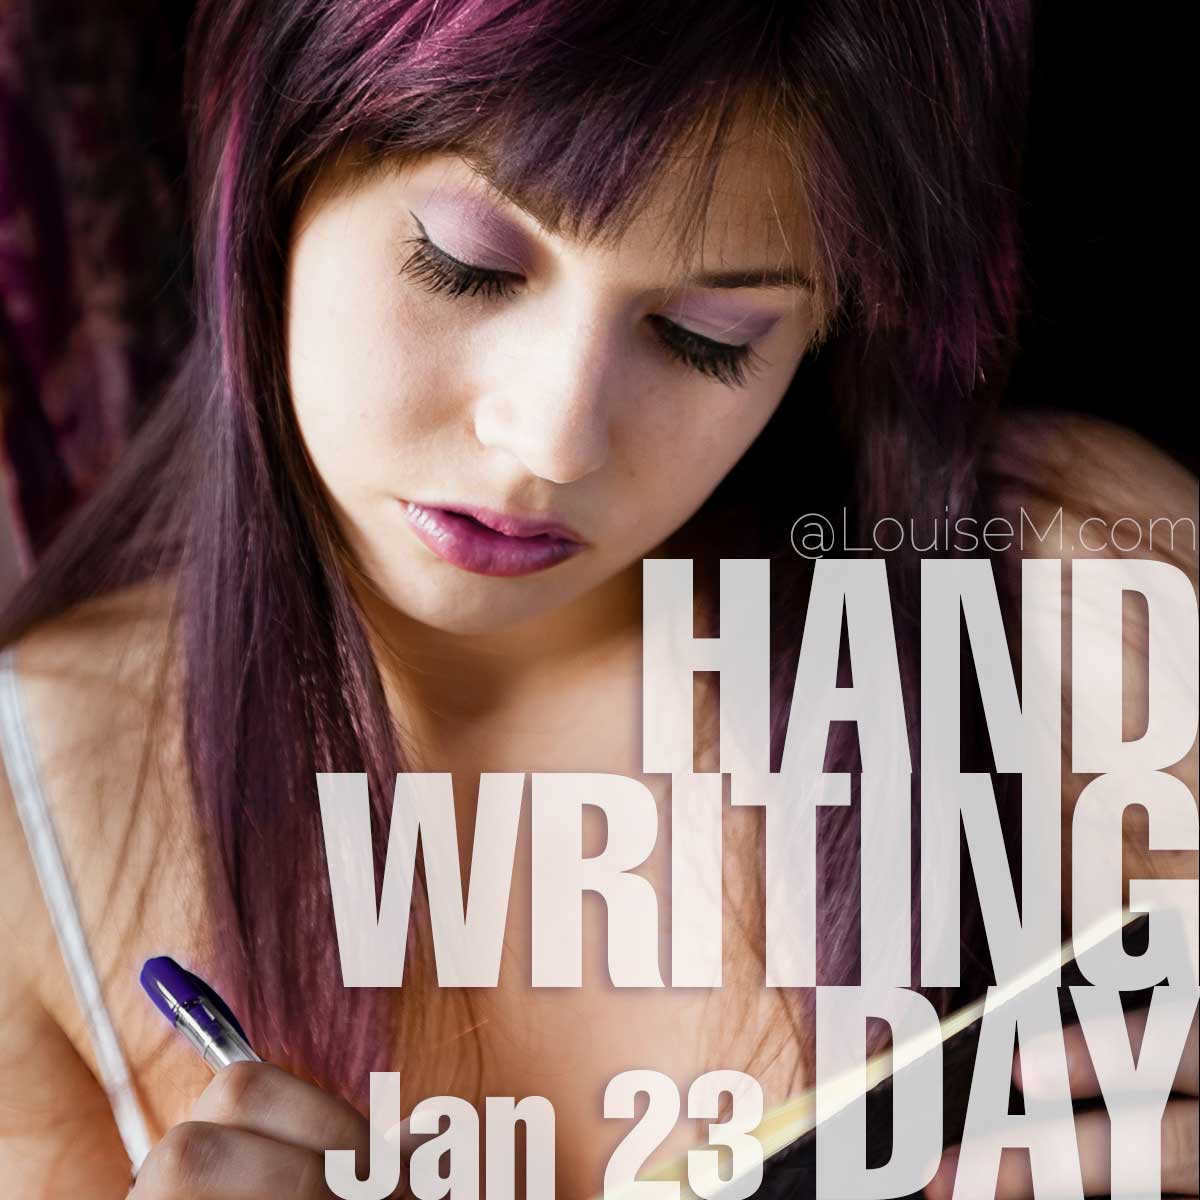 Handwriting Day text on photo of woman writing in journal.